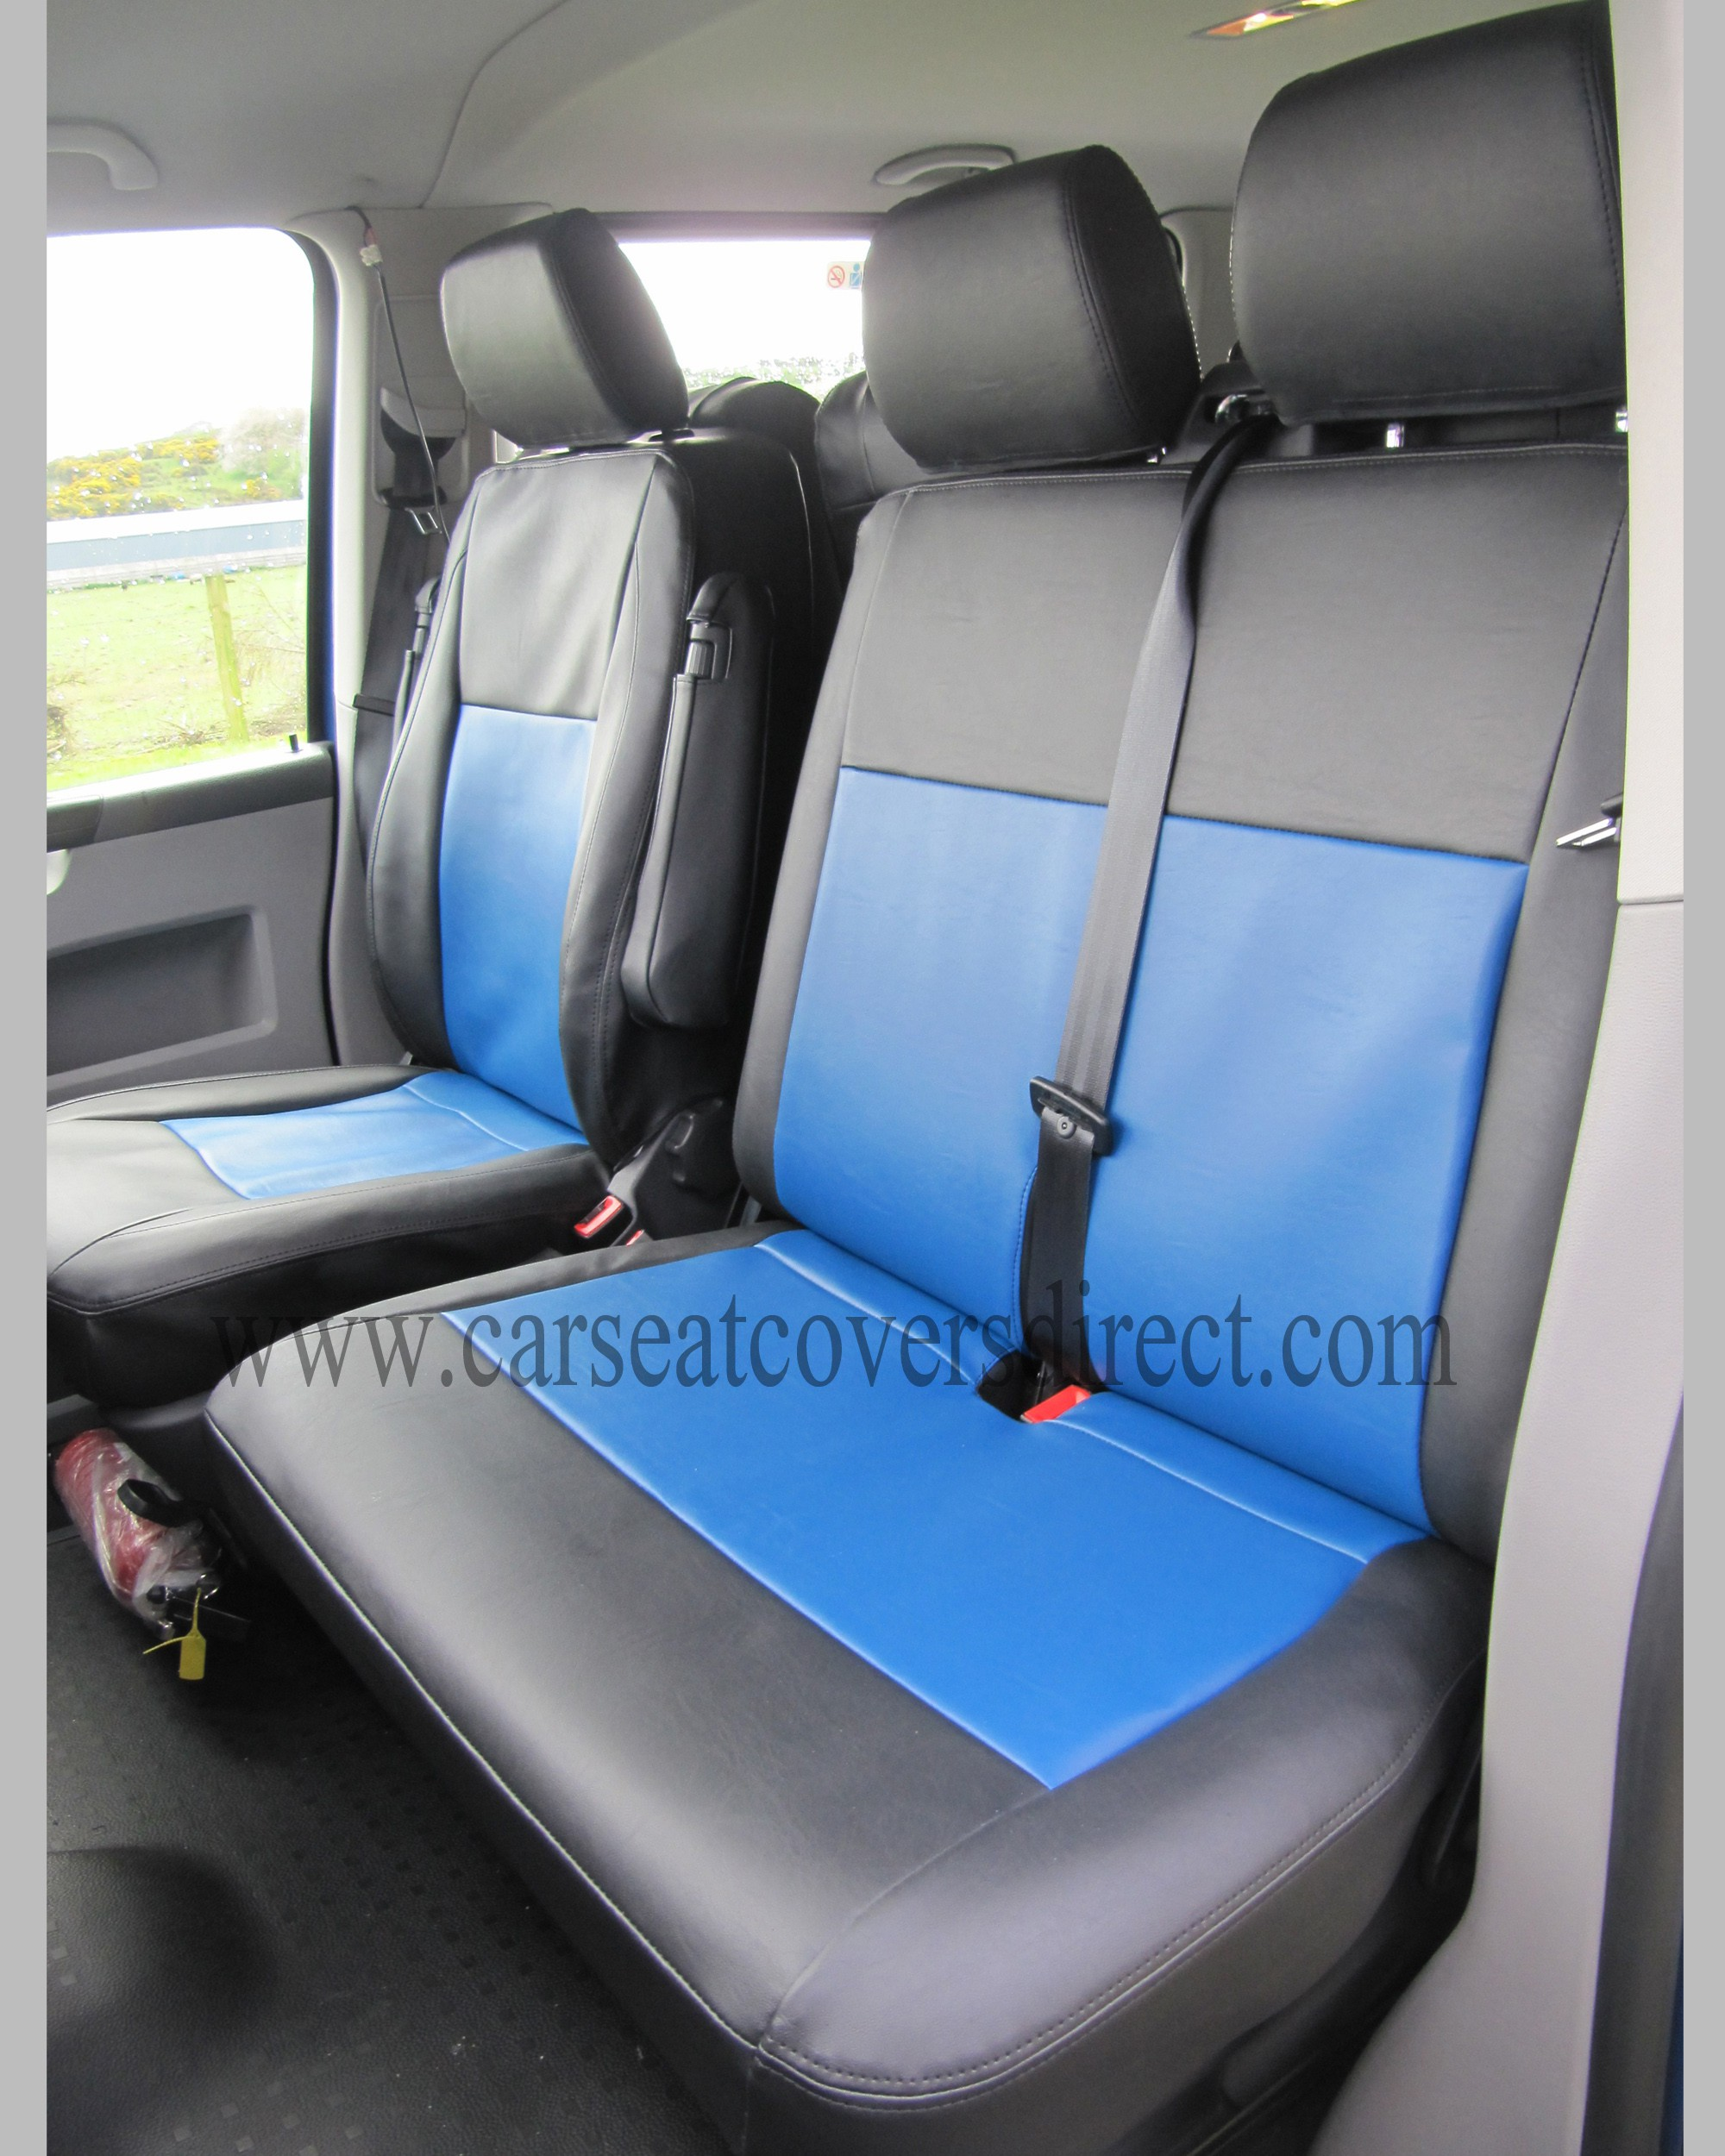 Volkswagen Vw Transporter T5 9 Seater Black Amp Blue Seat Covers